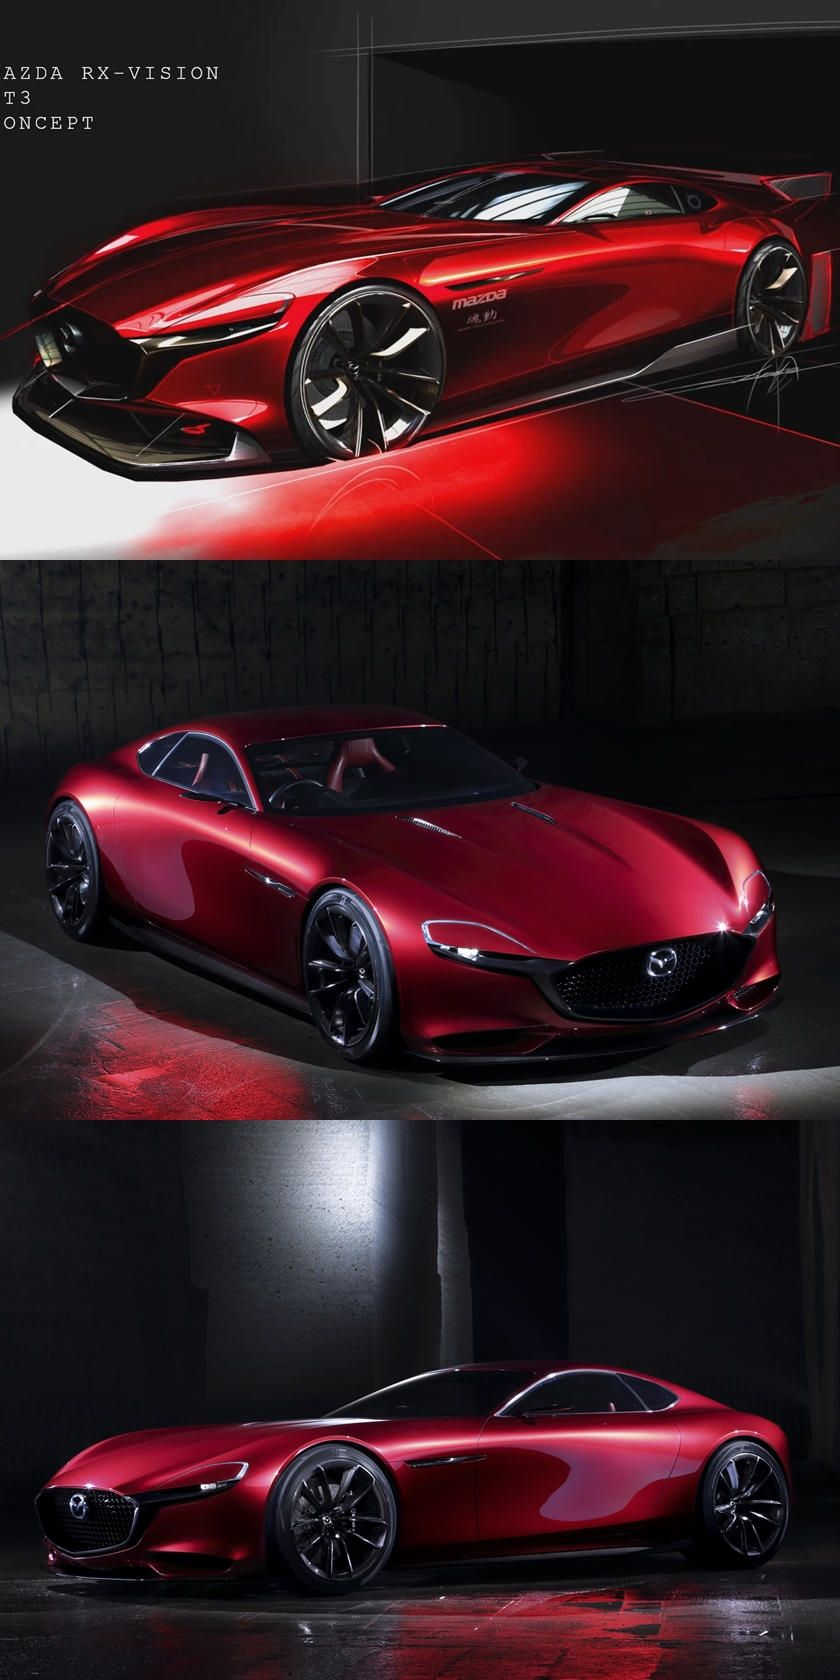 Stunning Mazda Rx Vision Is About To Get More Extreme In 2020 Mazda Tokyo Motor Show Gt Cars